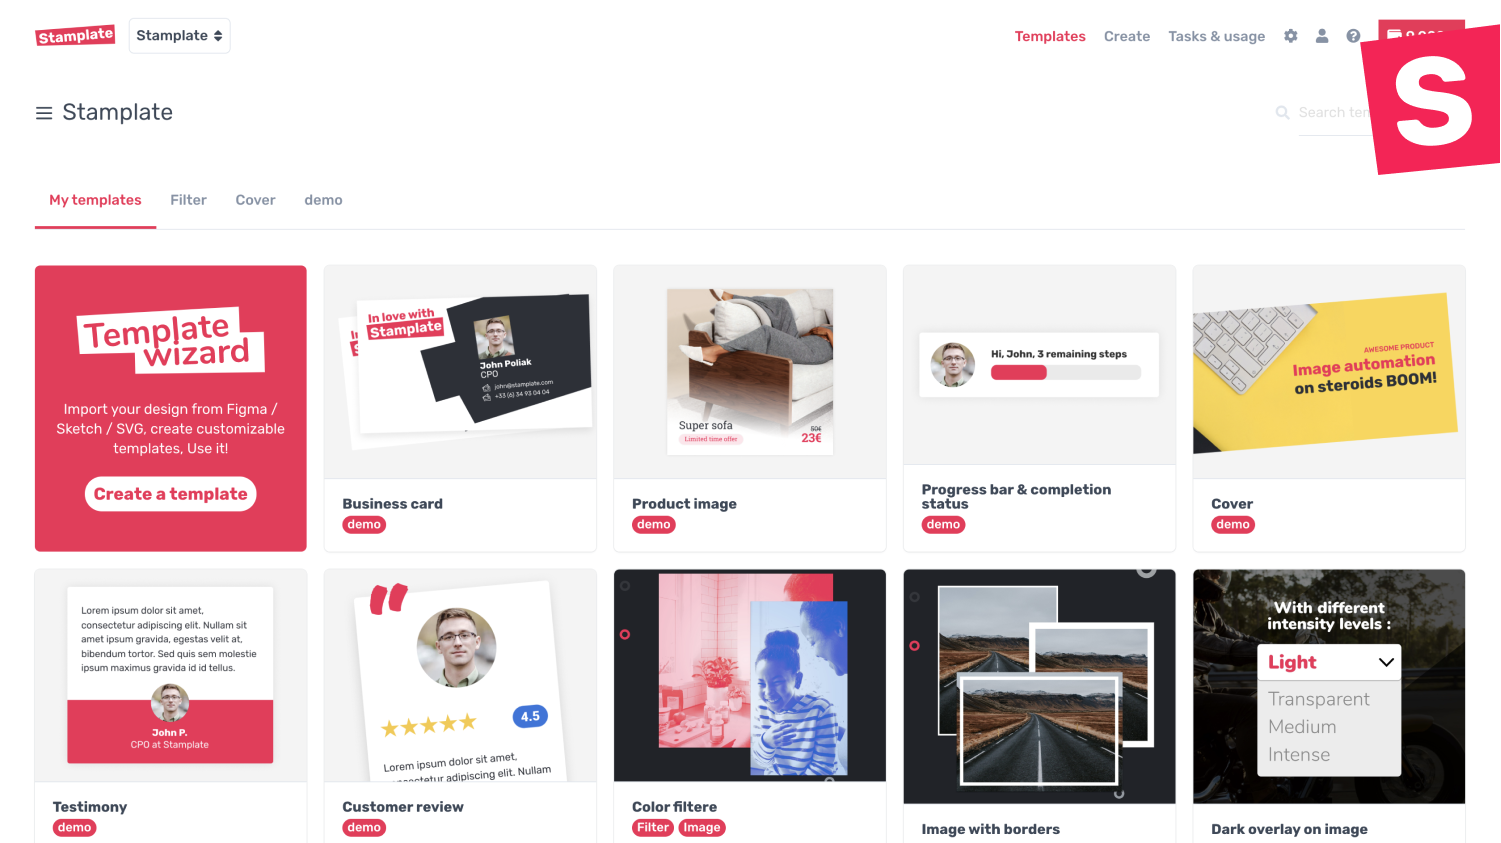 Manage your templates and collaborate with your team